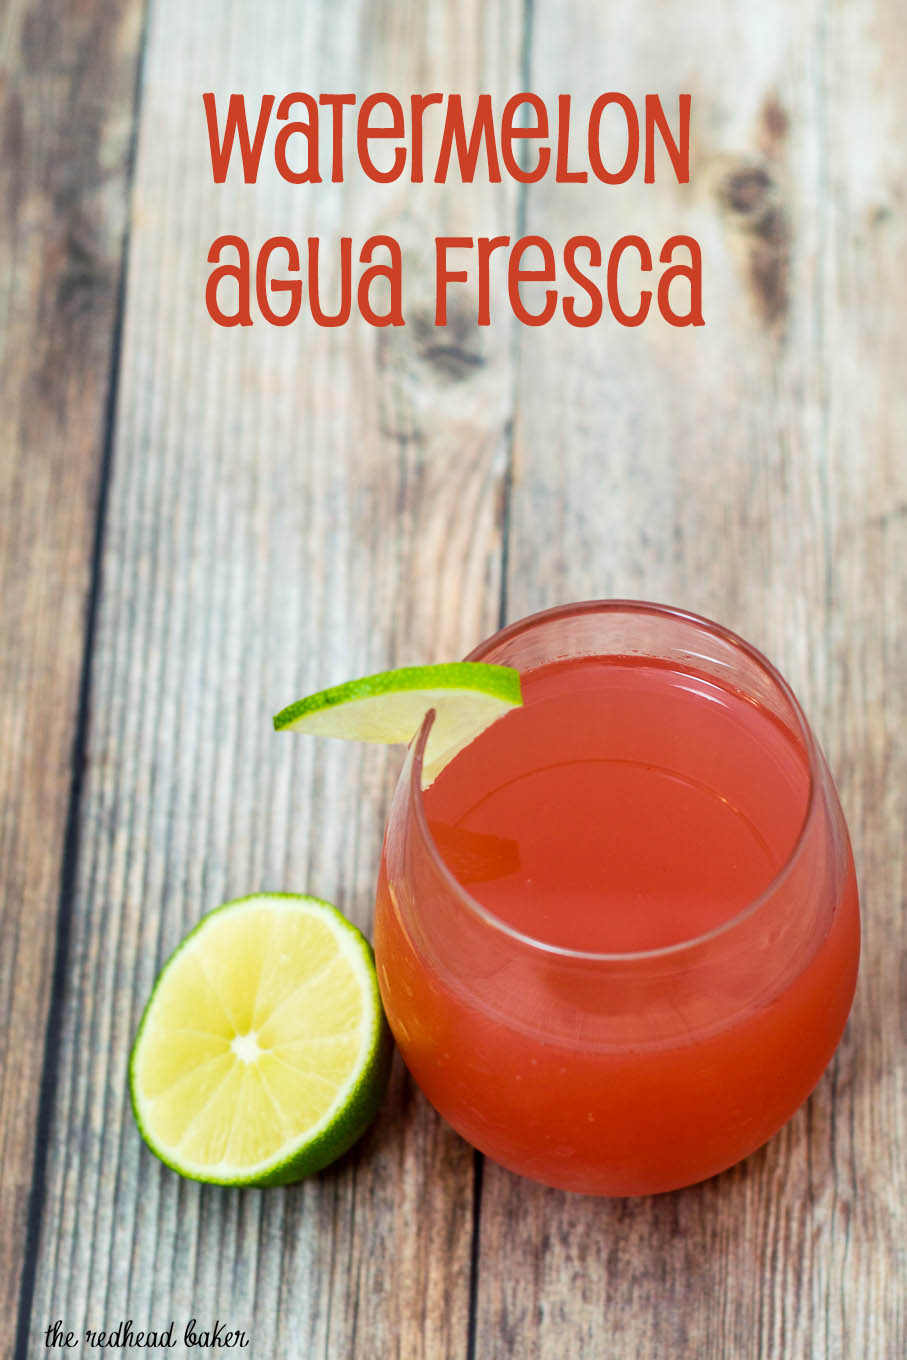 Watermelon agua fresca with a splash of lime juice is a refreshing summer drink, based on the popular drink from Mexican street vendors and bodegas.